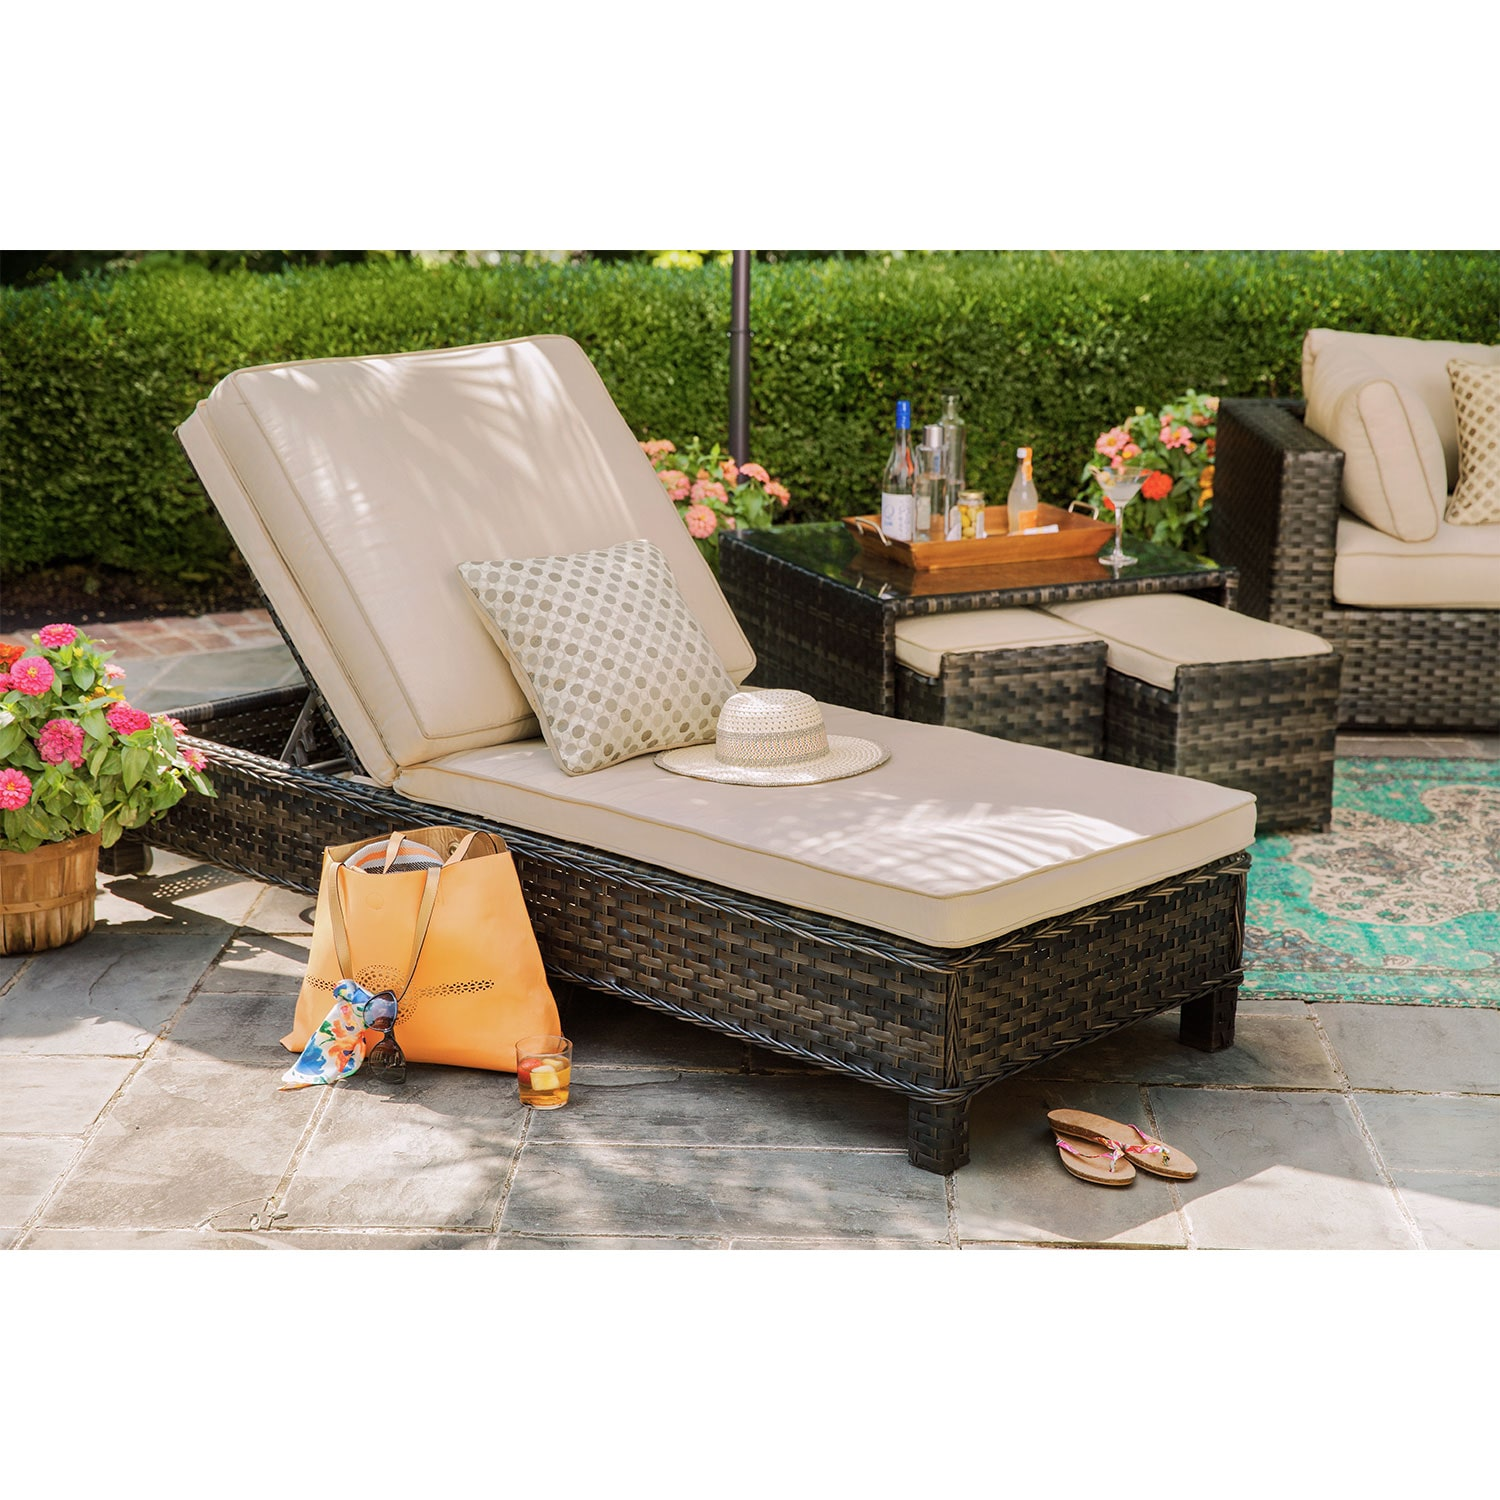 Regatta Outdoor Chaise Lounge